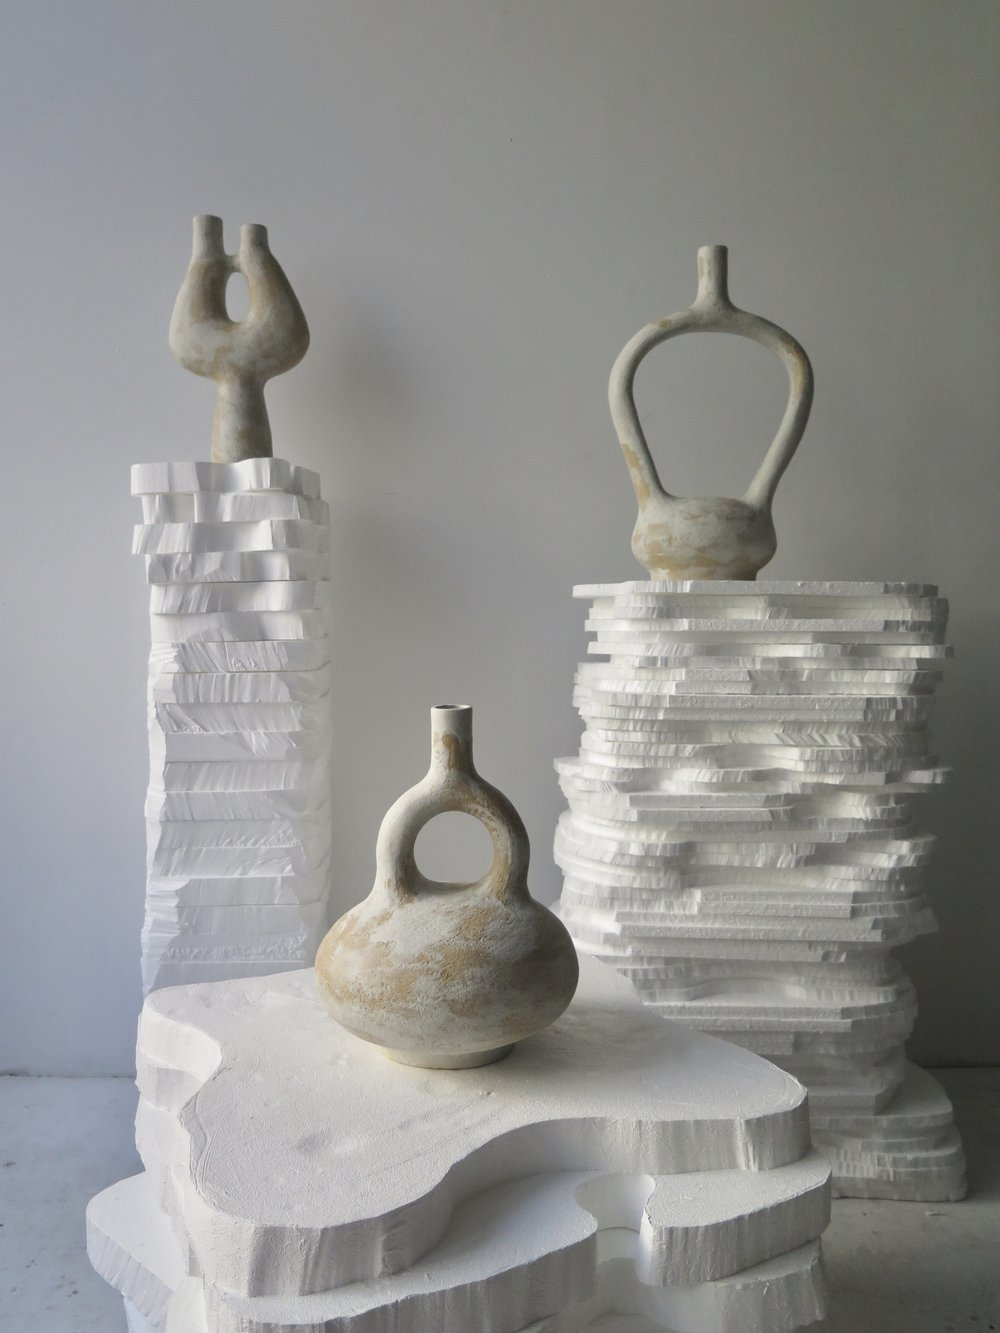 Trio of Vessels for 1000 Vases